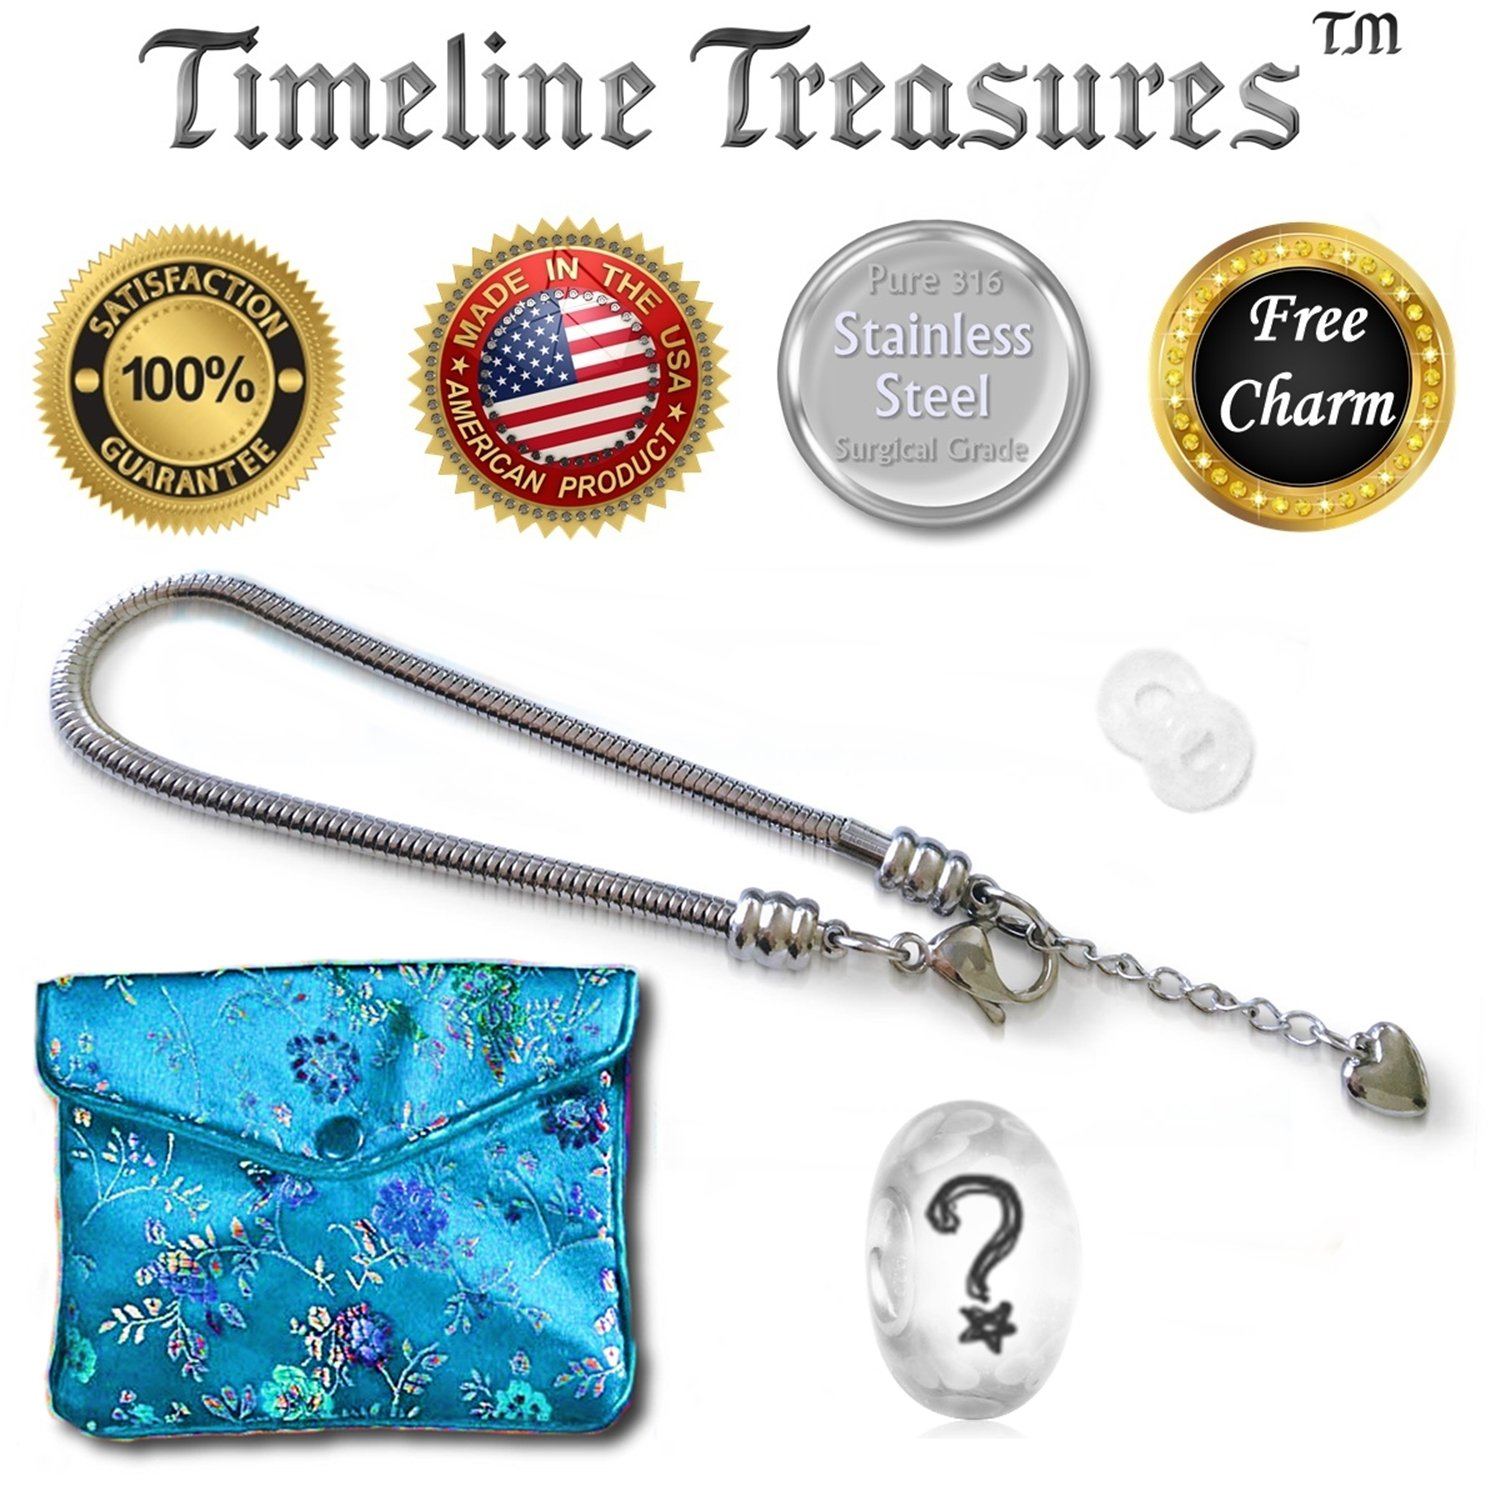 Timeline Treasures European Charm Bracelet For Women and Girls Bead Charms, Stainless Steel Snake Chain, Claw 7.5 Inch by Timeline Treasures (Image #3)